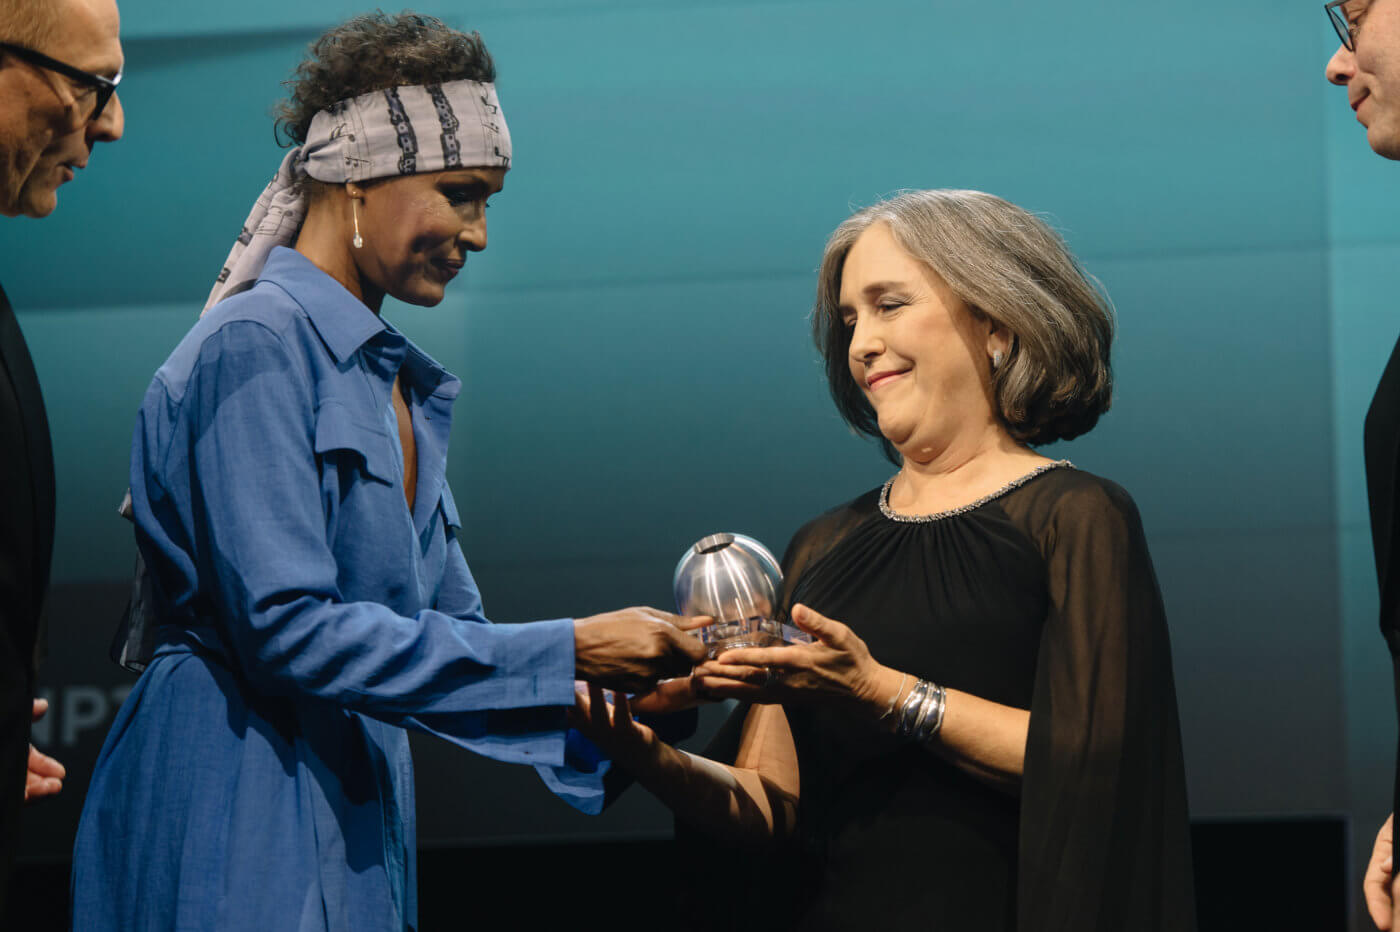 Waris Dieri presents Paula Caballero the DNP Honorary Award for her efforts on the SDGs on November 22 in Dusseldorf. Photo: DNP © Dariusz Misztal